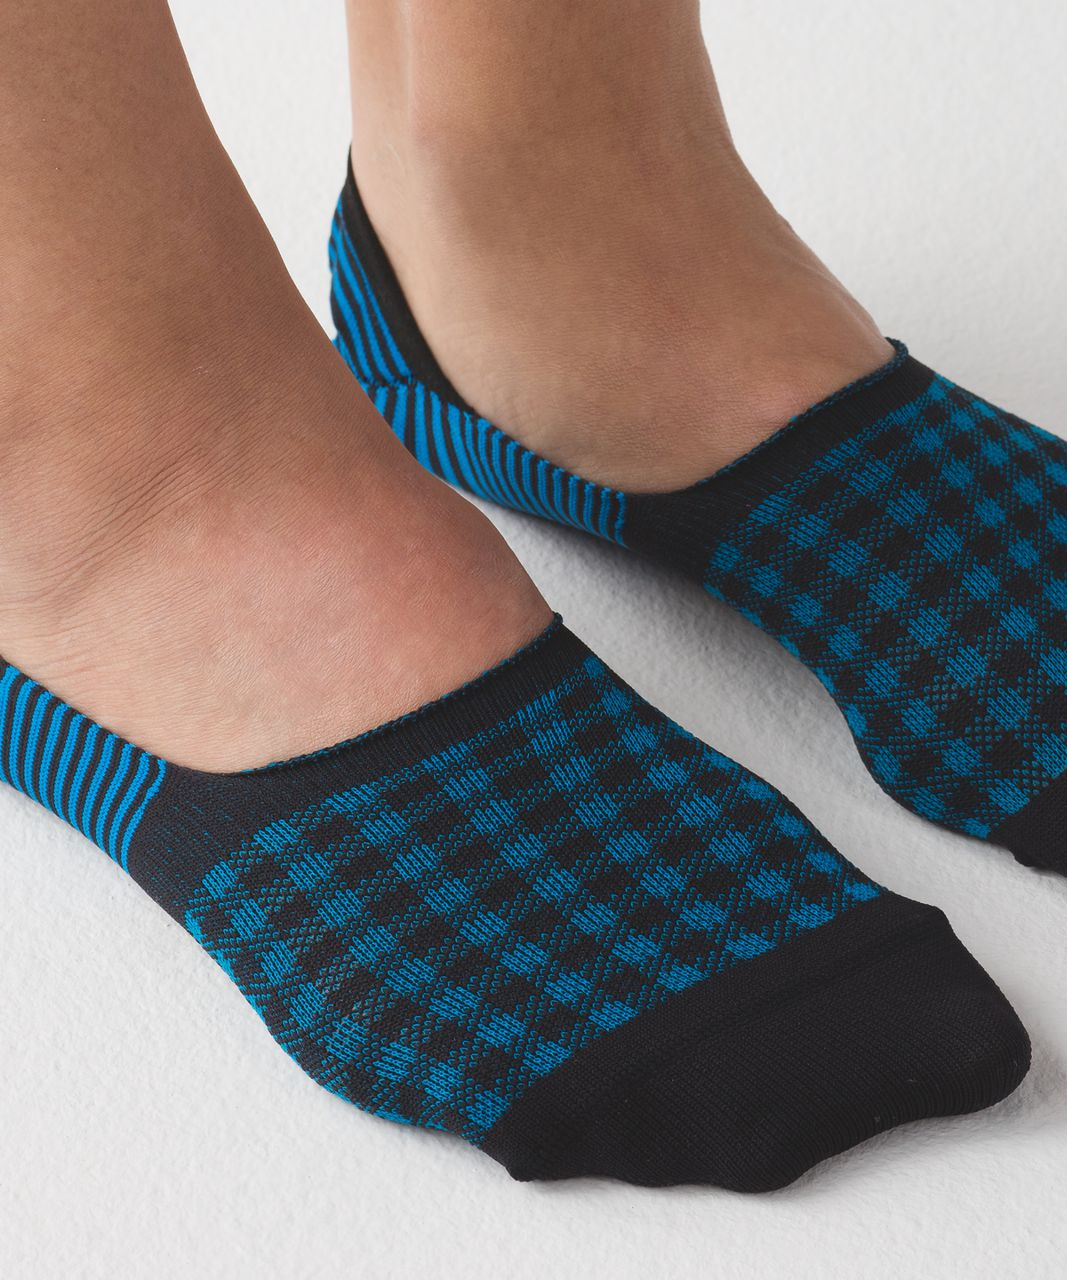 Lululemon Secret Sock - Shocking Blue / Black / Ice Blue